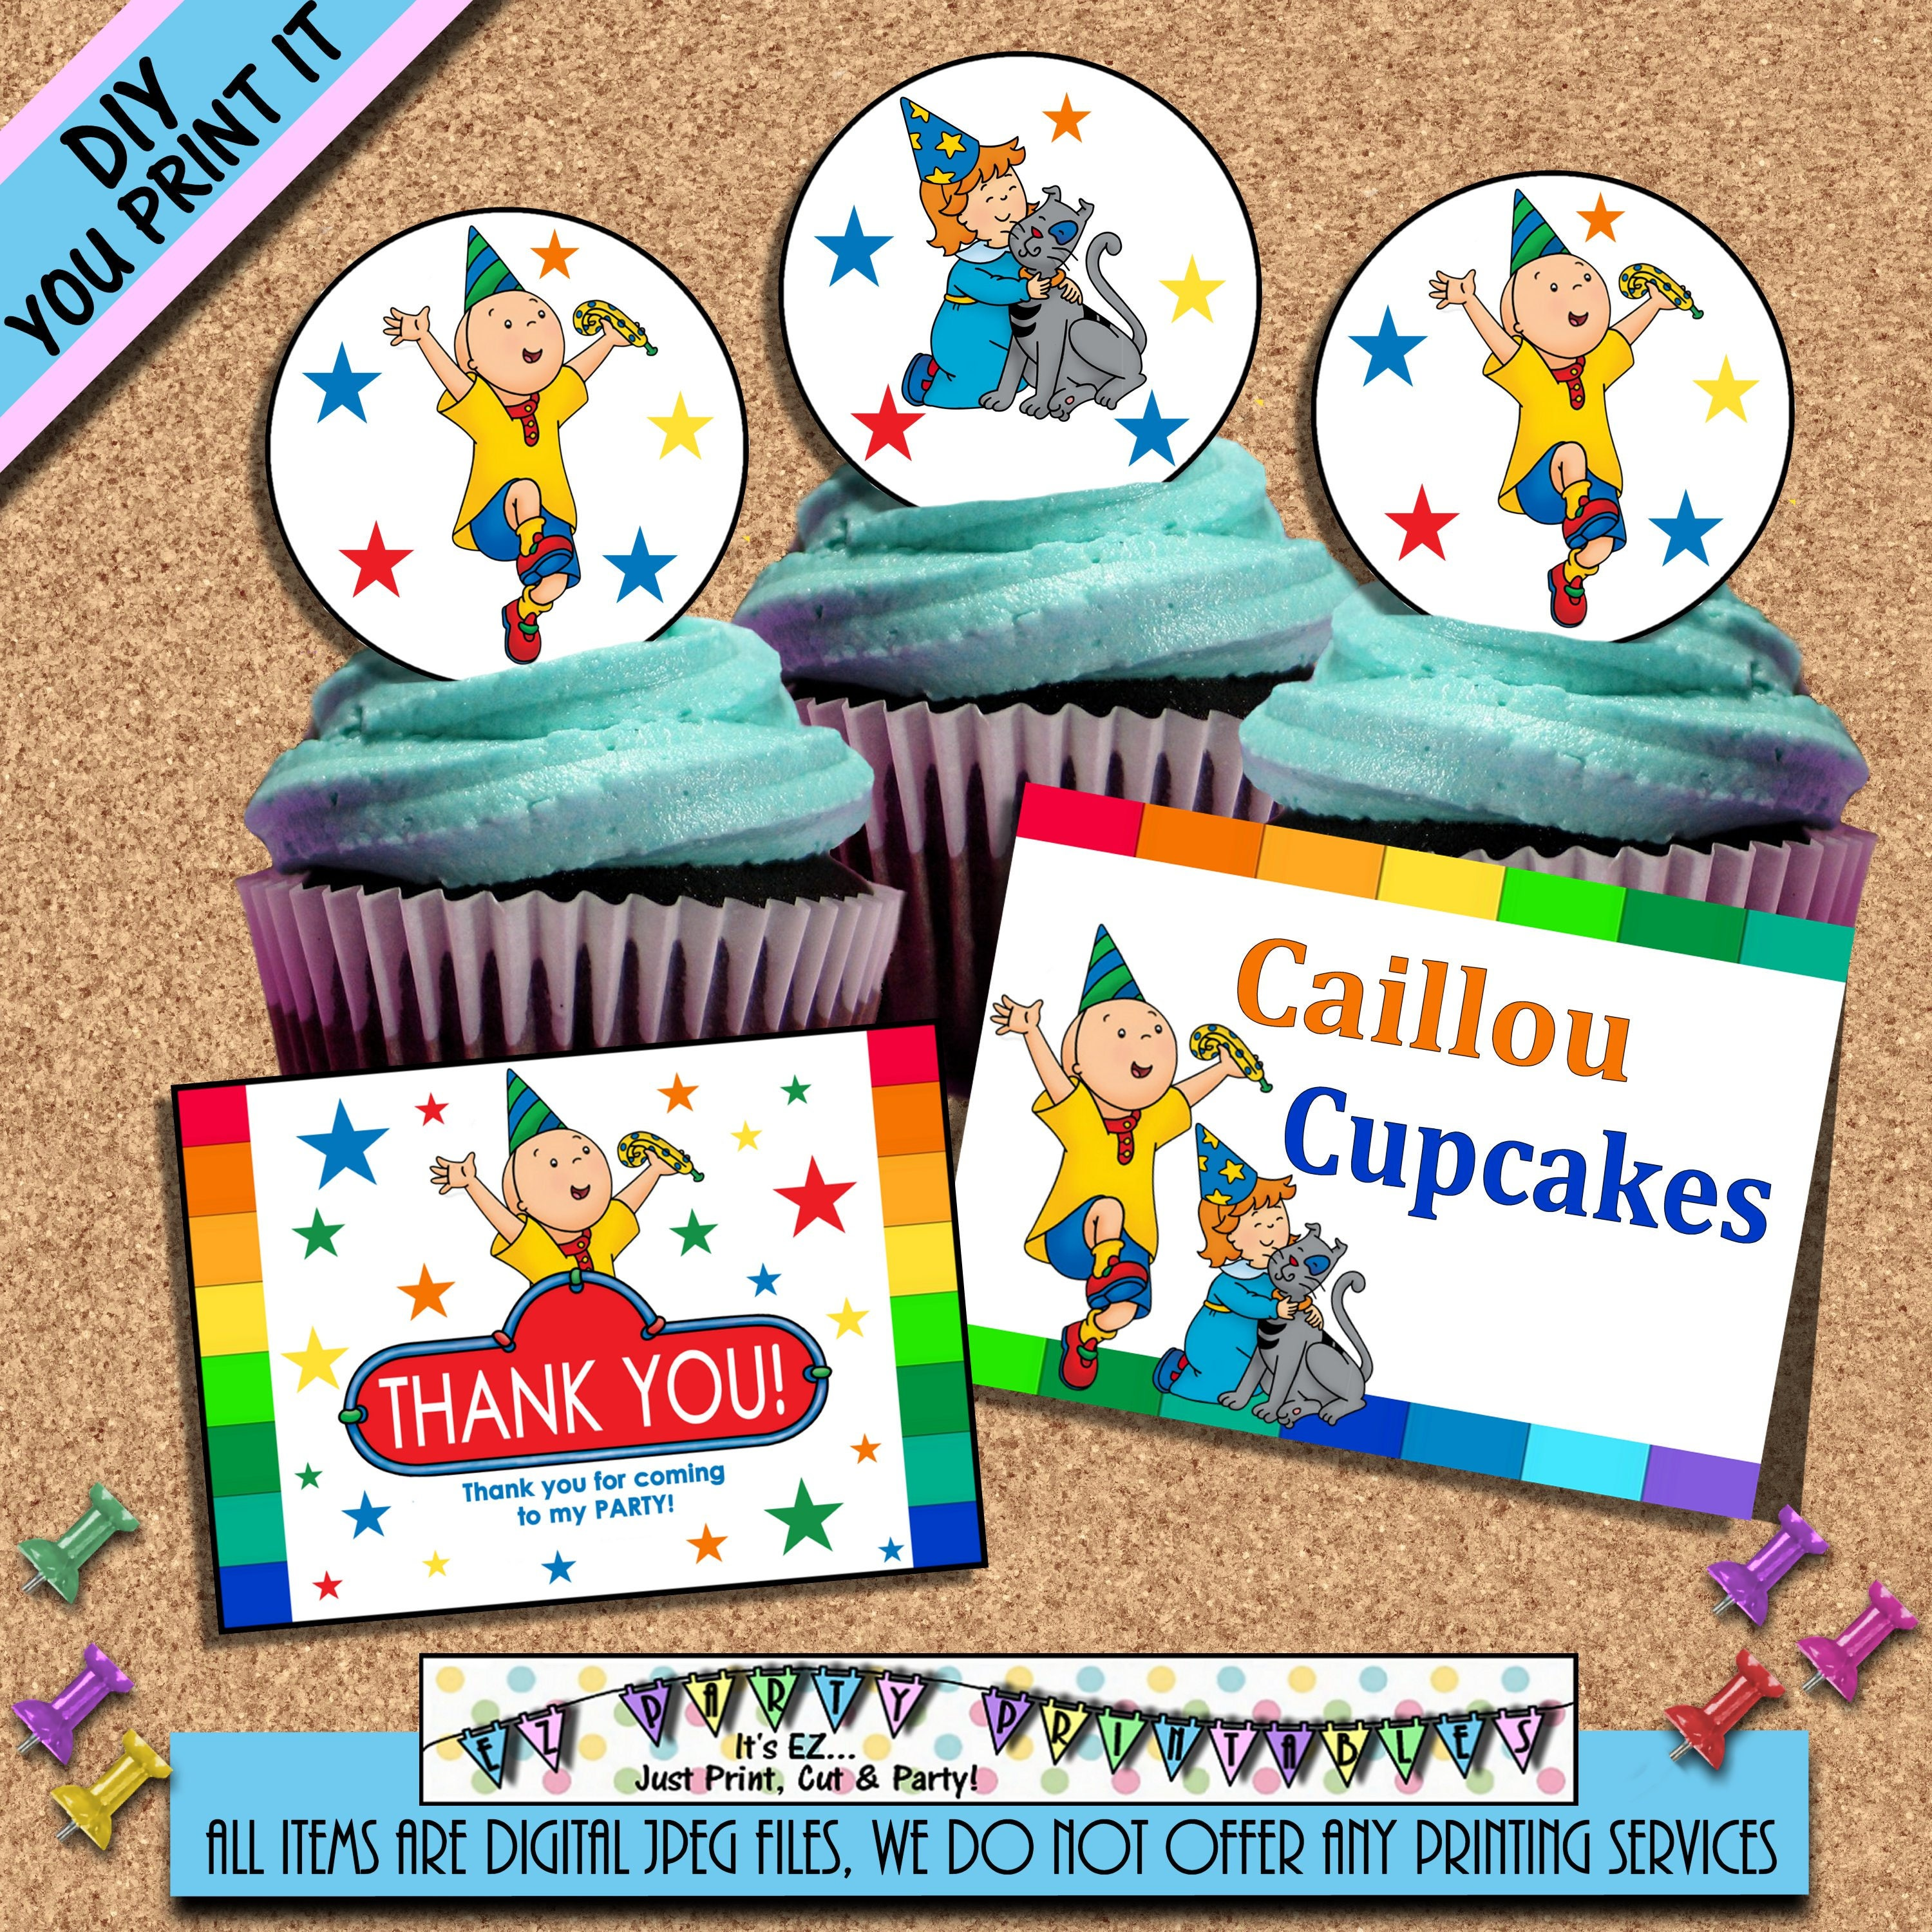 CAILLOU BIRTHDAY Food Tents Cupcake Toppers Favor Tags Caillou